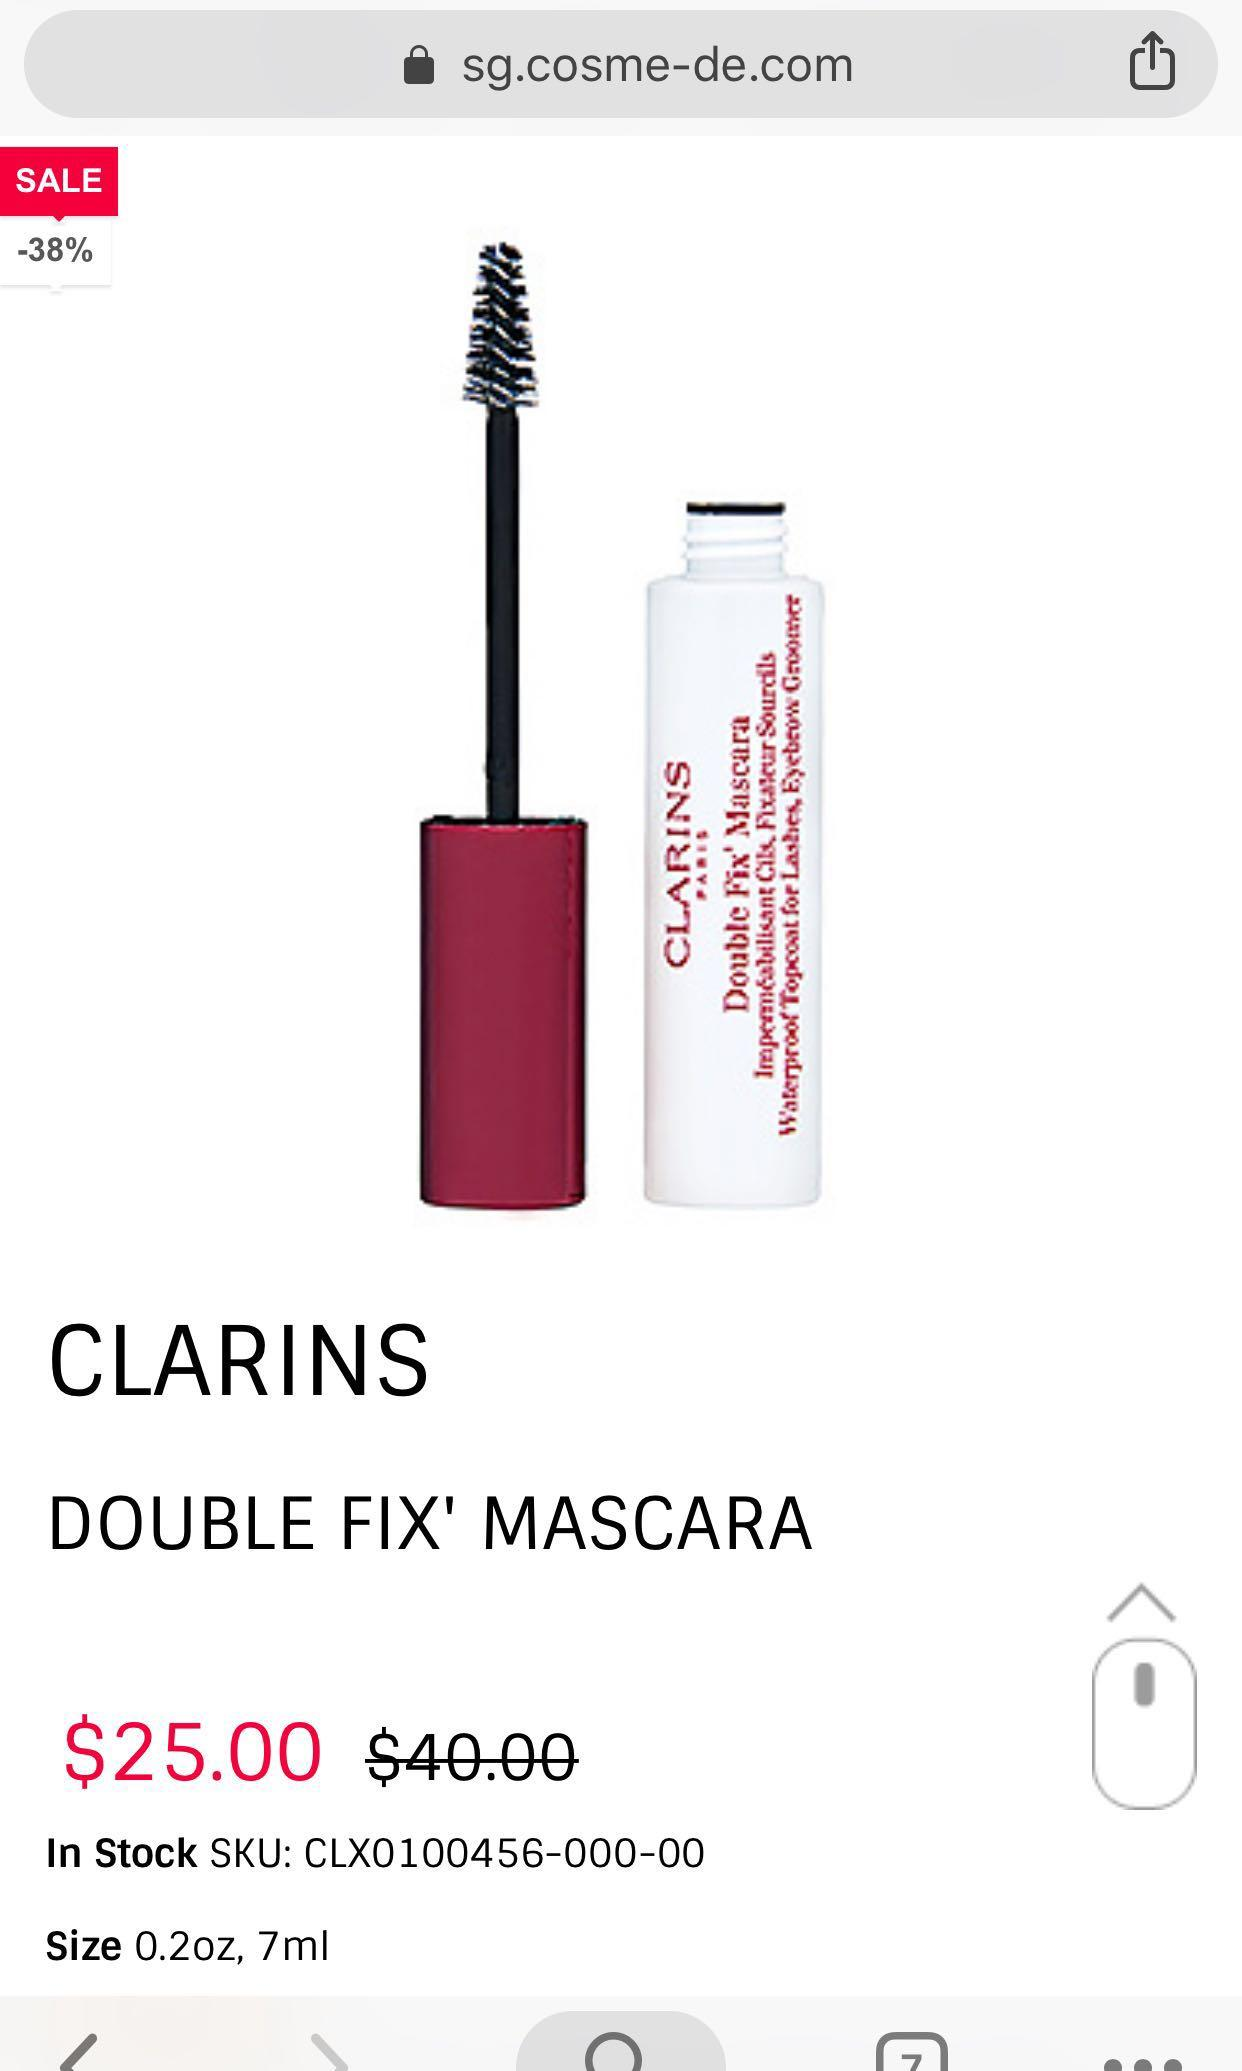 Double Fix Mascara by Clarins #8